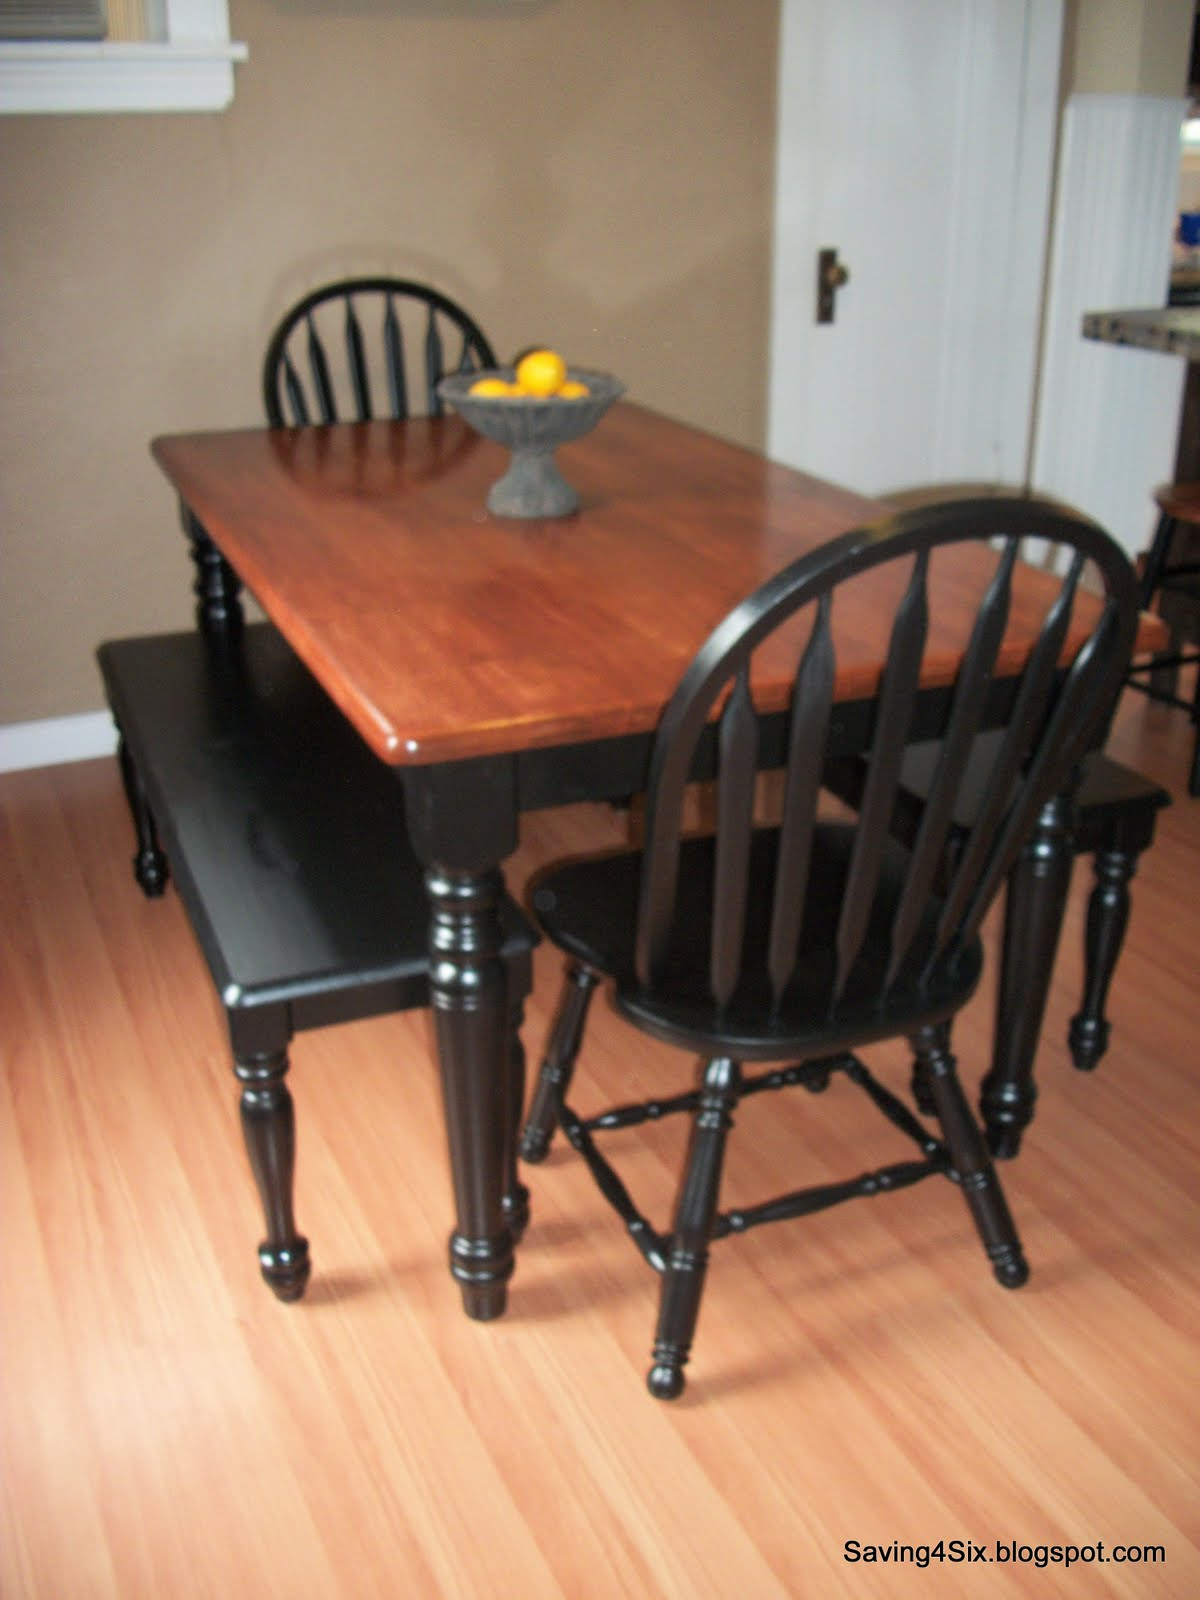 Refinishing The Dining Room Table : 3040906 from saving4six.com size 1200 x 1600 jpeg 110kB